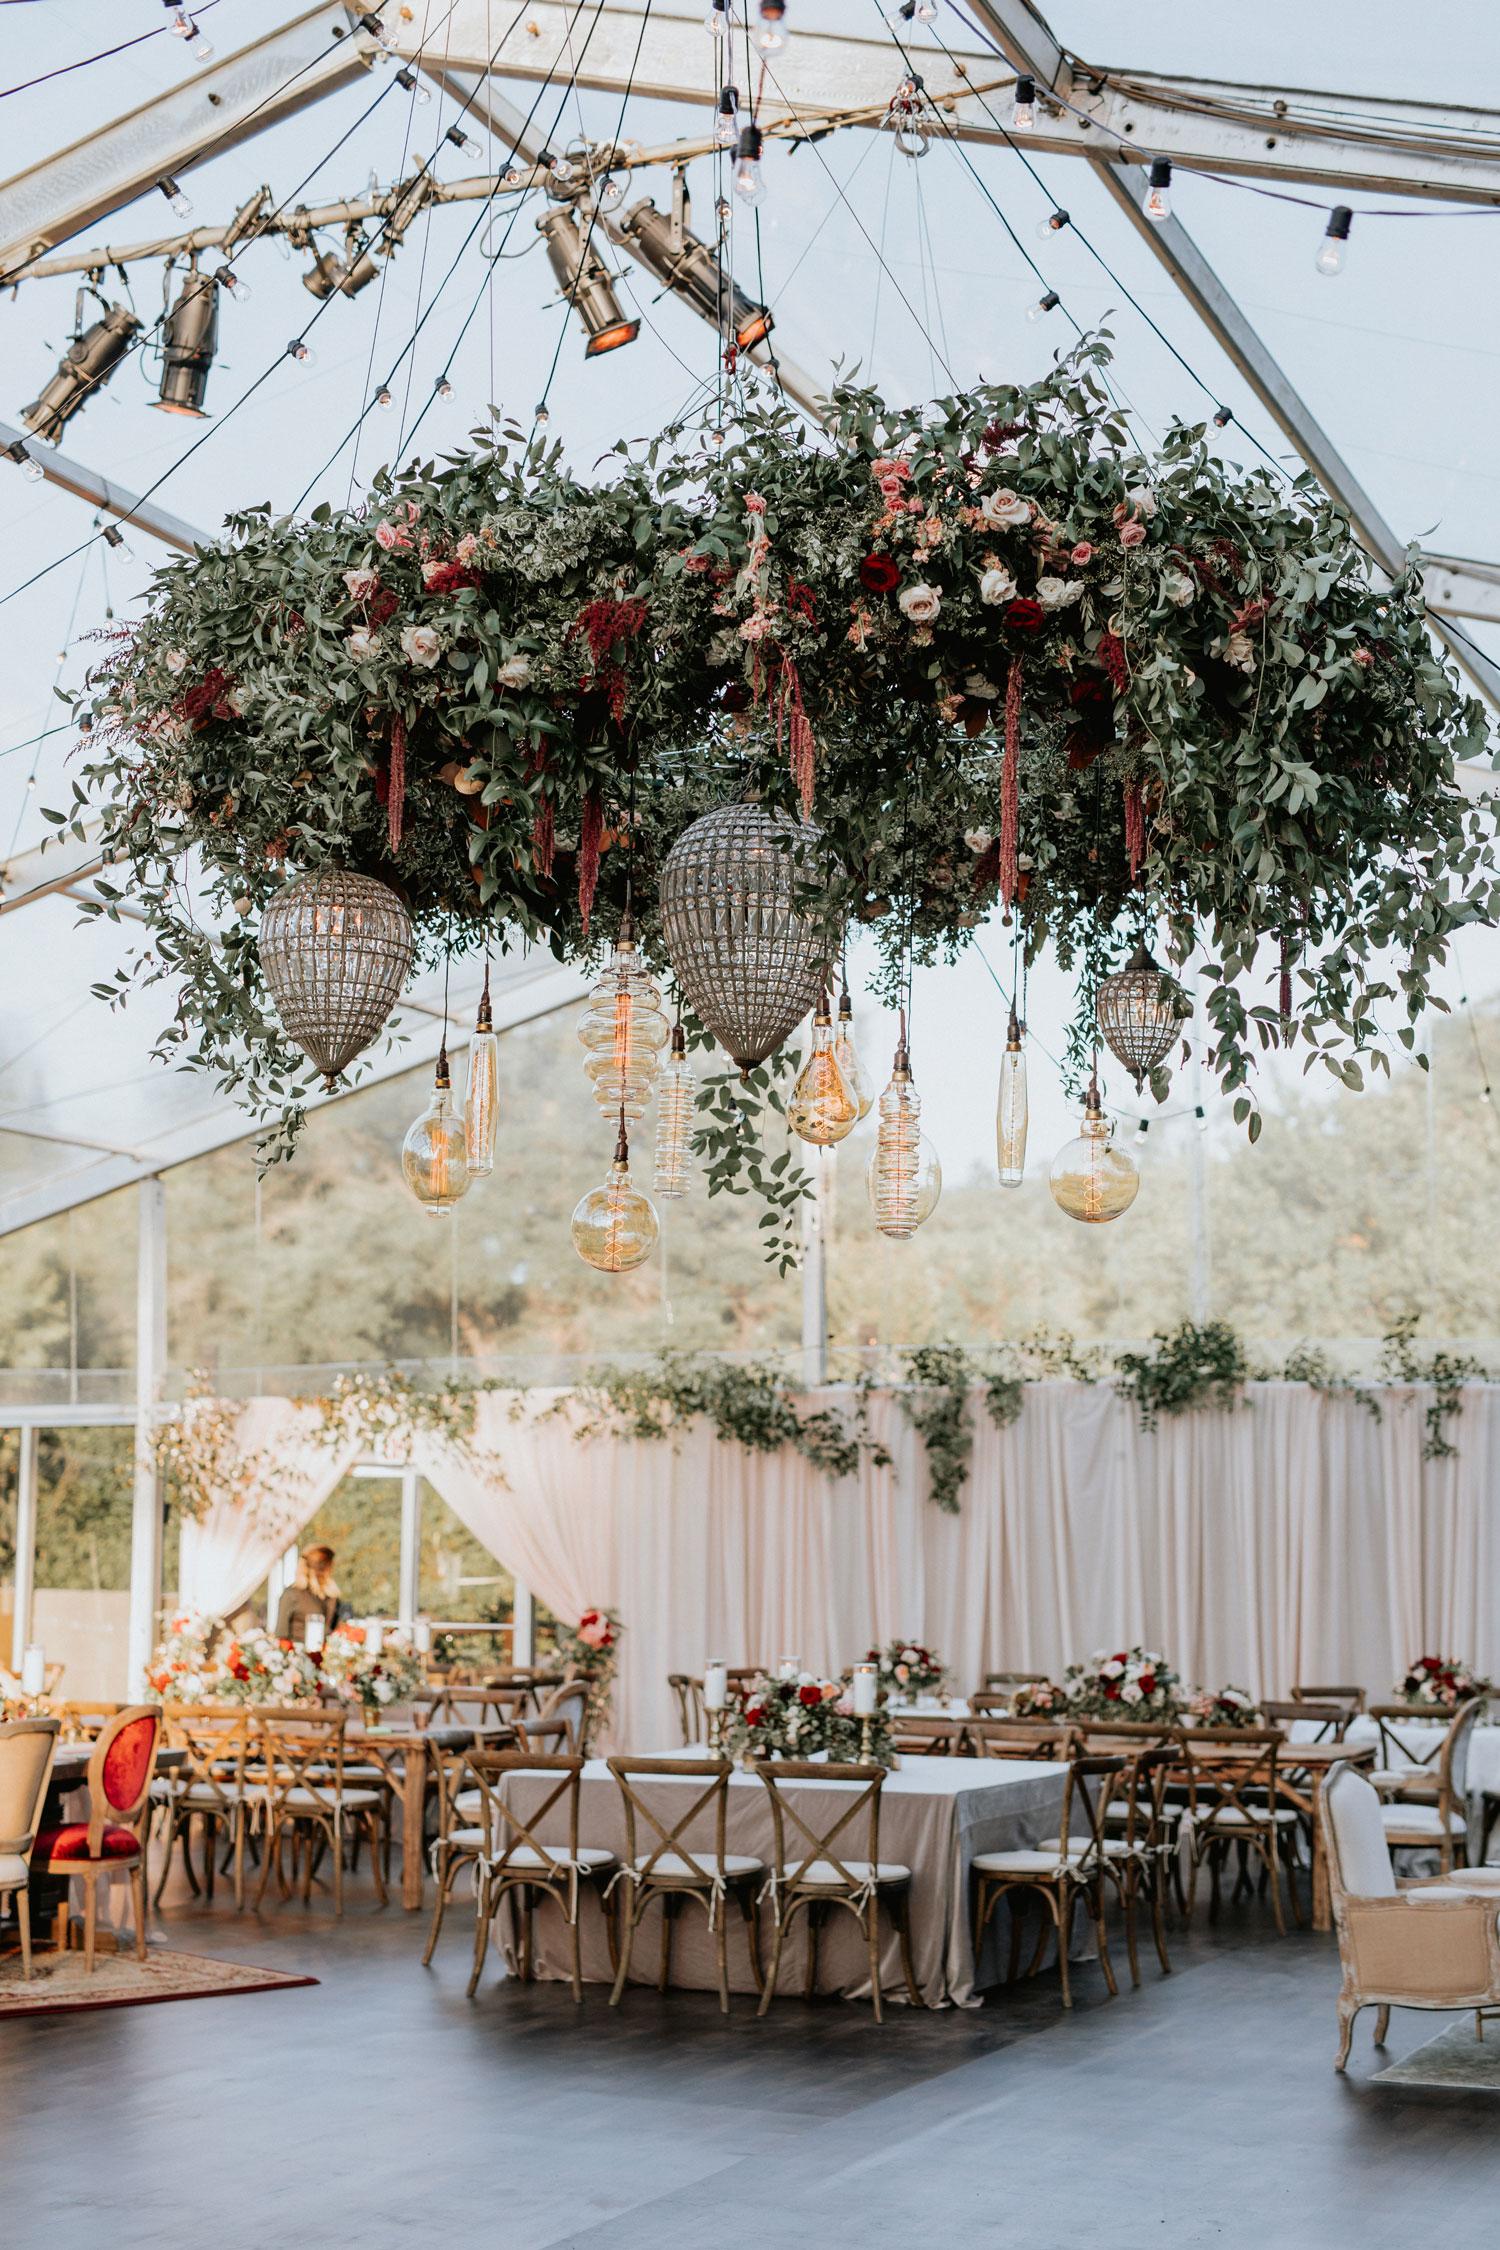 Clear tent wedding reception fall decor hues color palette ceiling installation flower chandelier